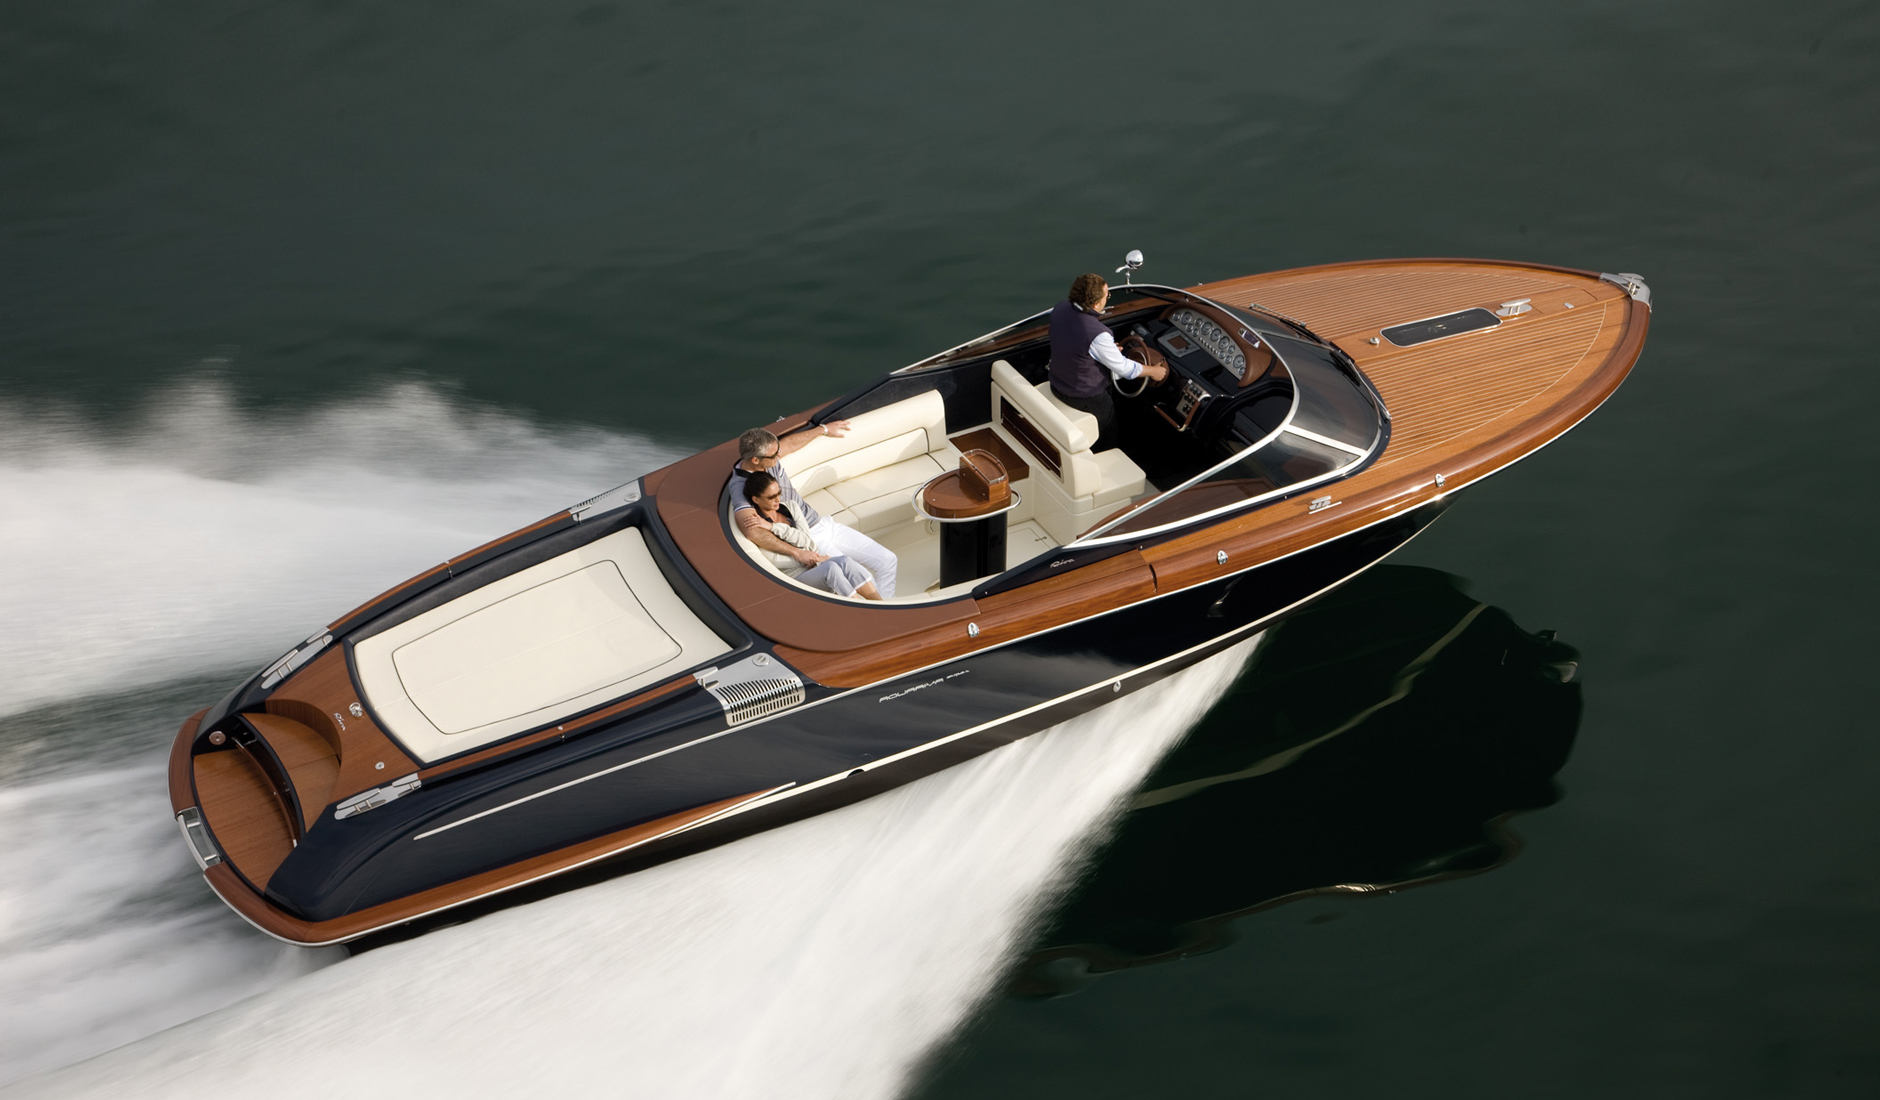 RIVA AQUARIVA SUPER 2019 год Фото  7